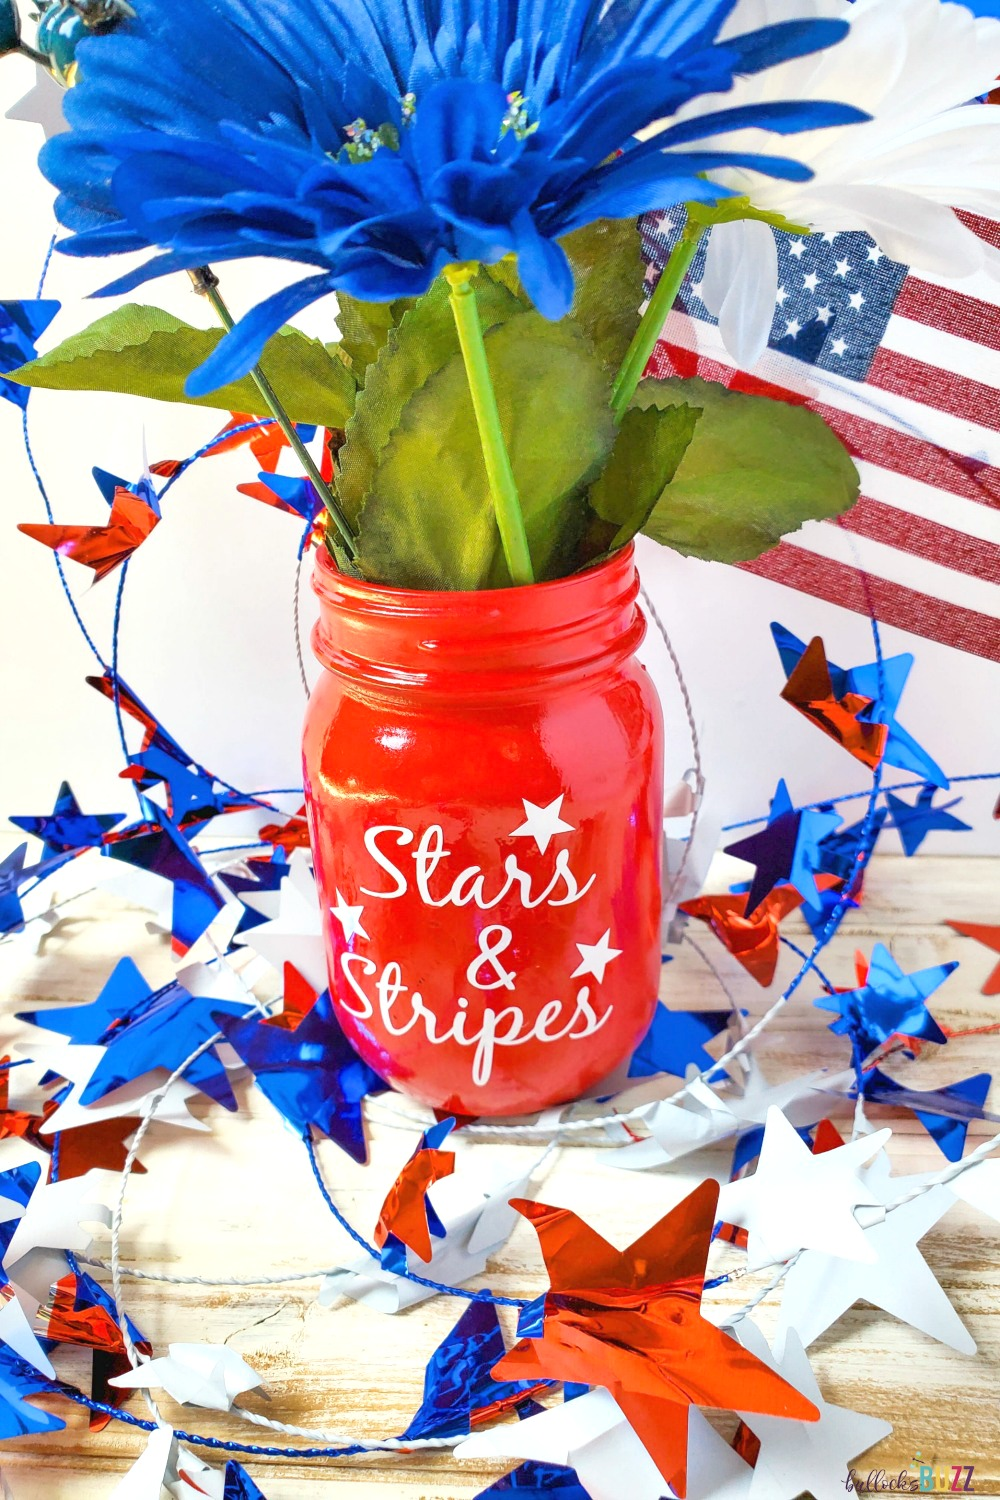 This fun and festive DIY Patriotic Mason Jar centerpiece is a quick and easy July 4th decoration. #crafts #patrioticcrafts